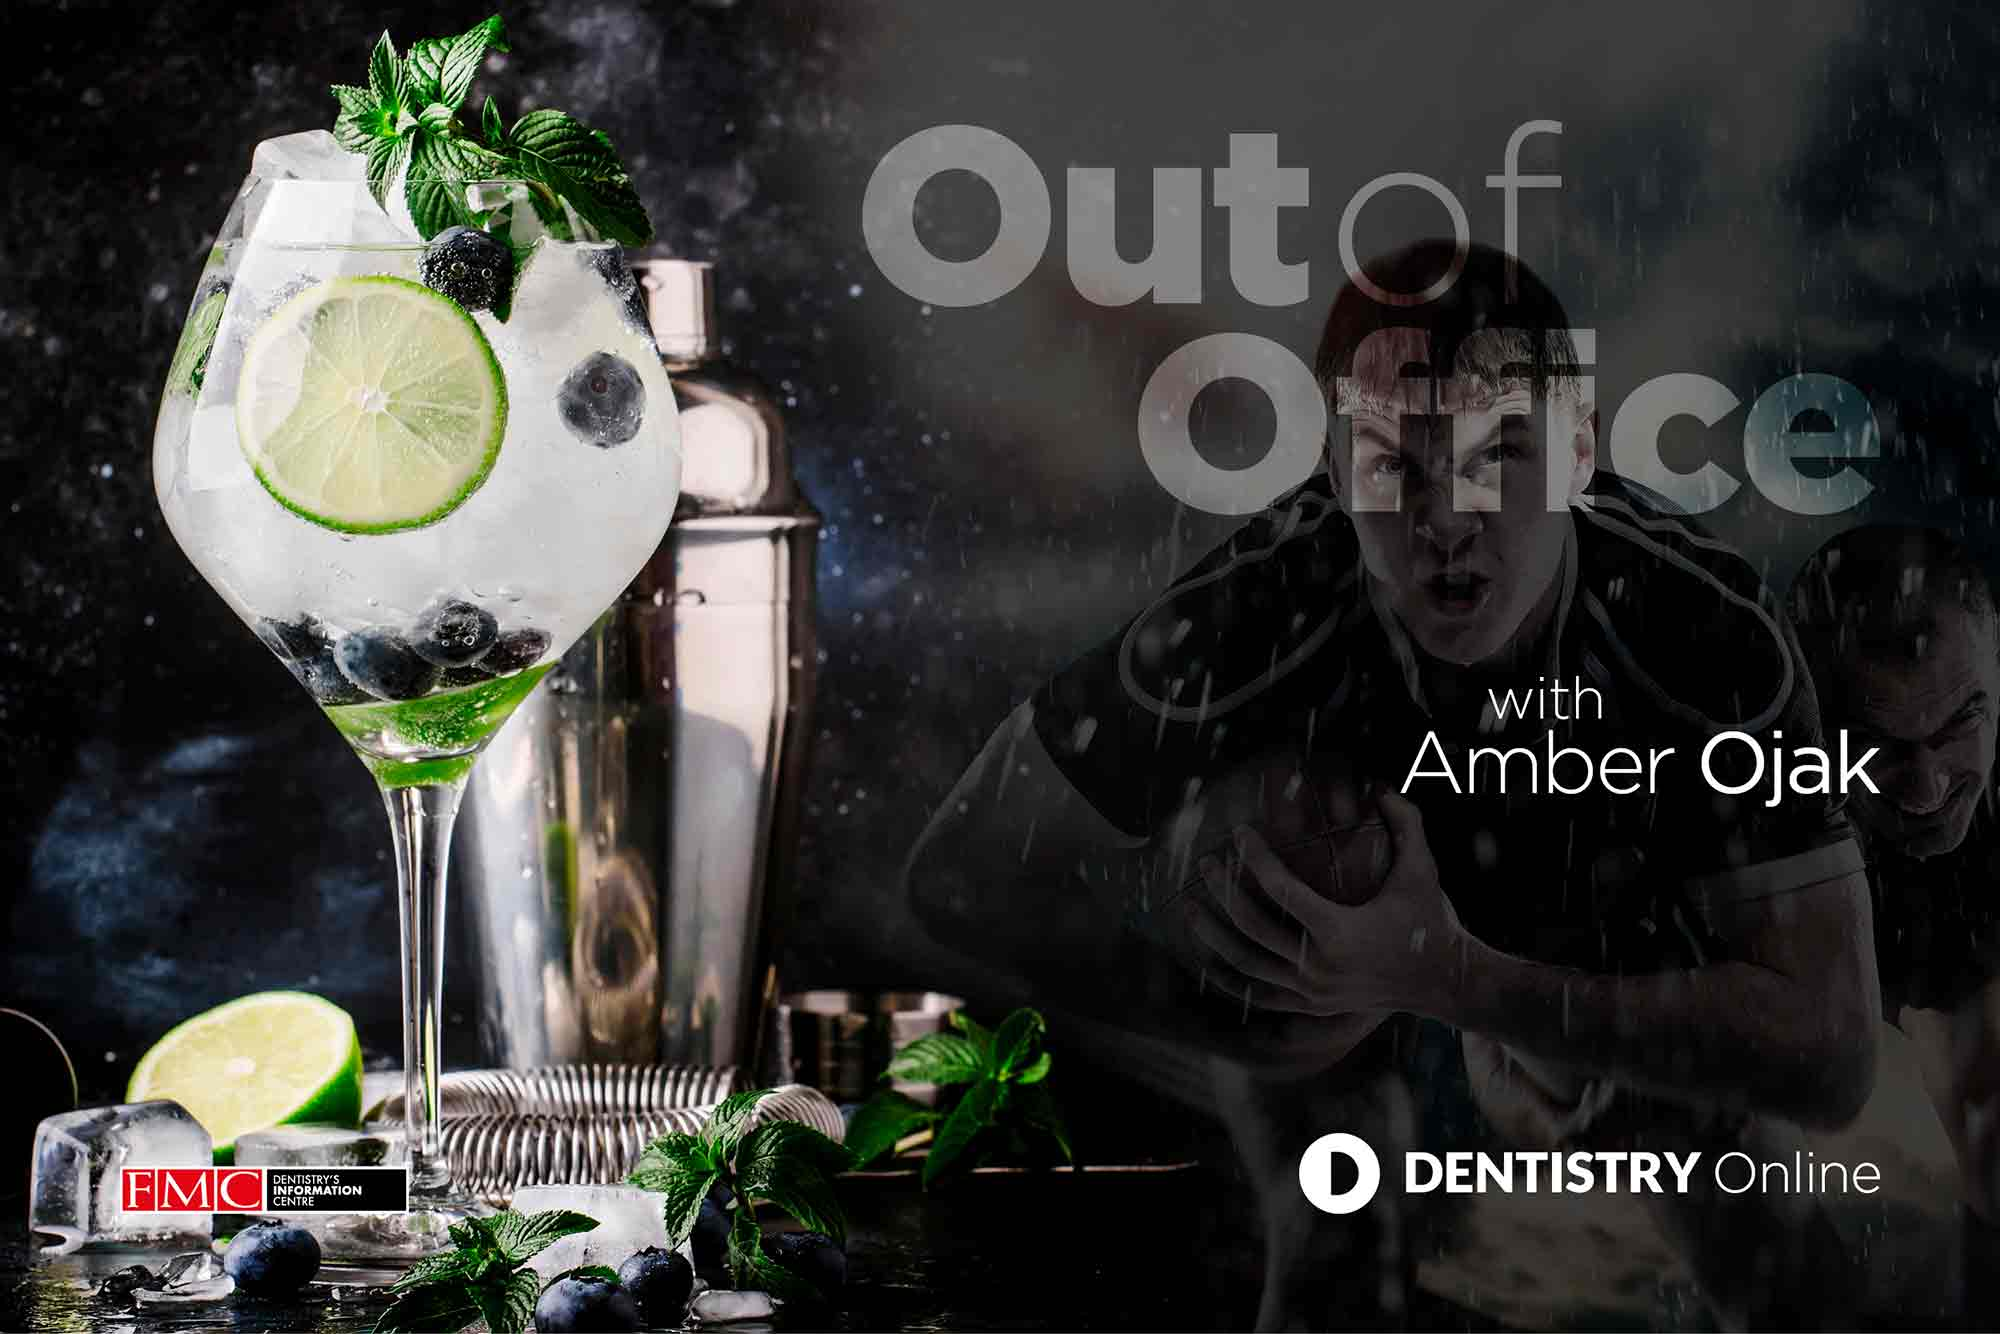 Amber Ojak opens up about her passion for the Six Nations, good food and her 20-bottle gin collection